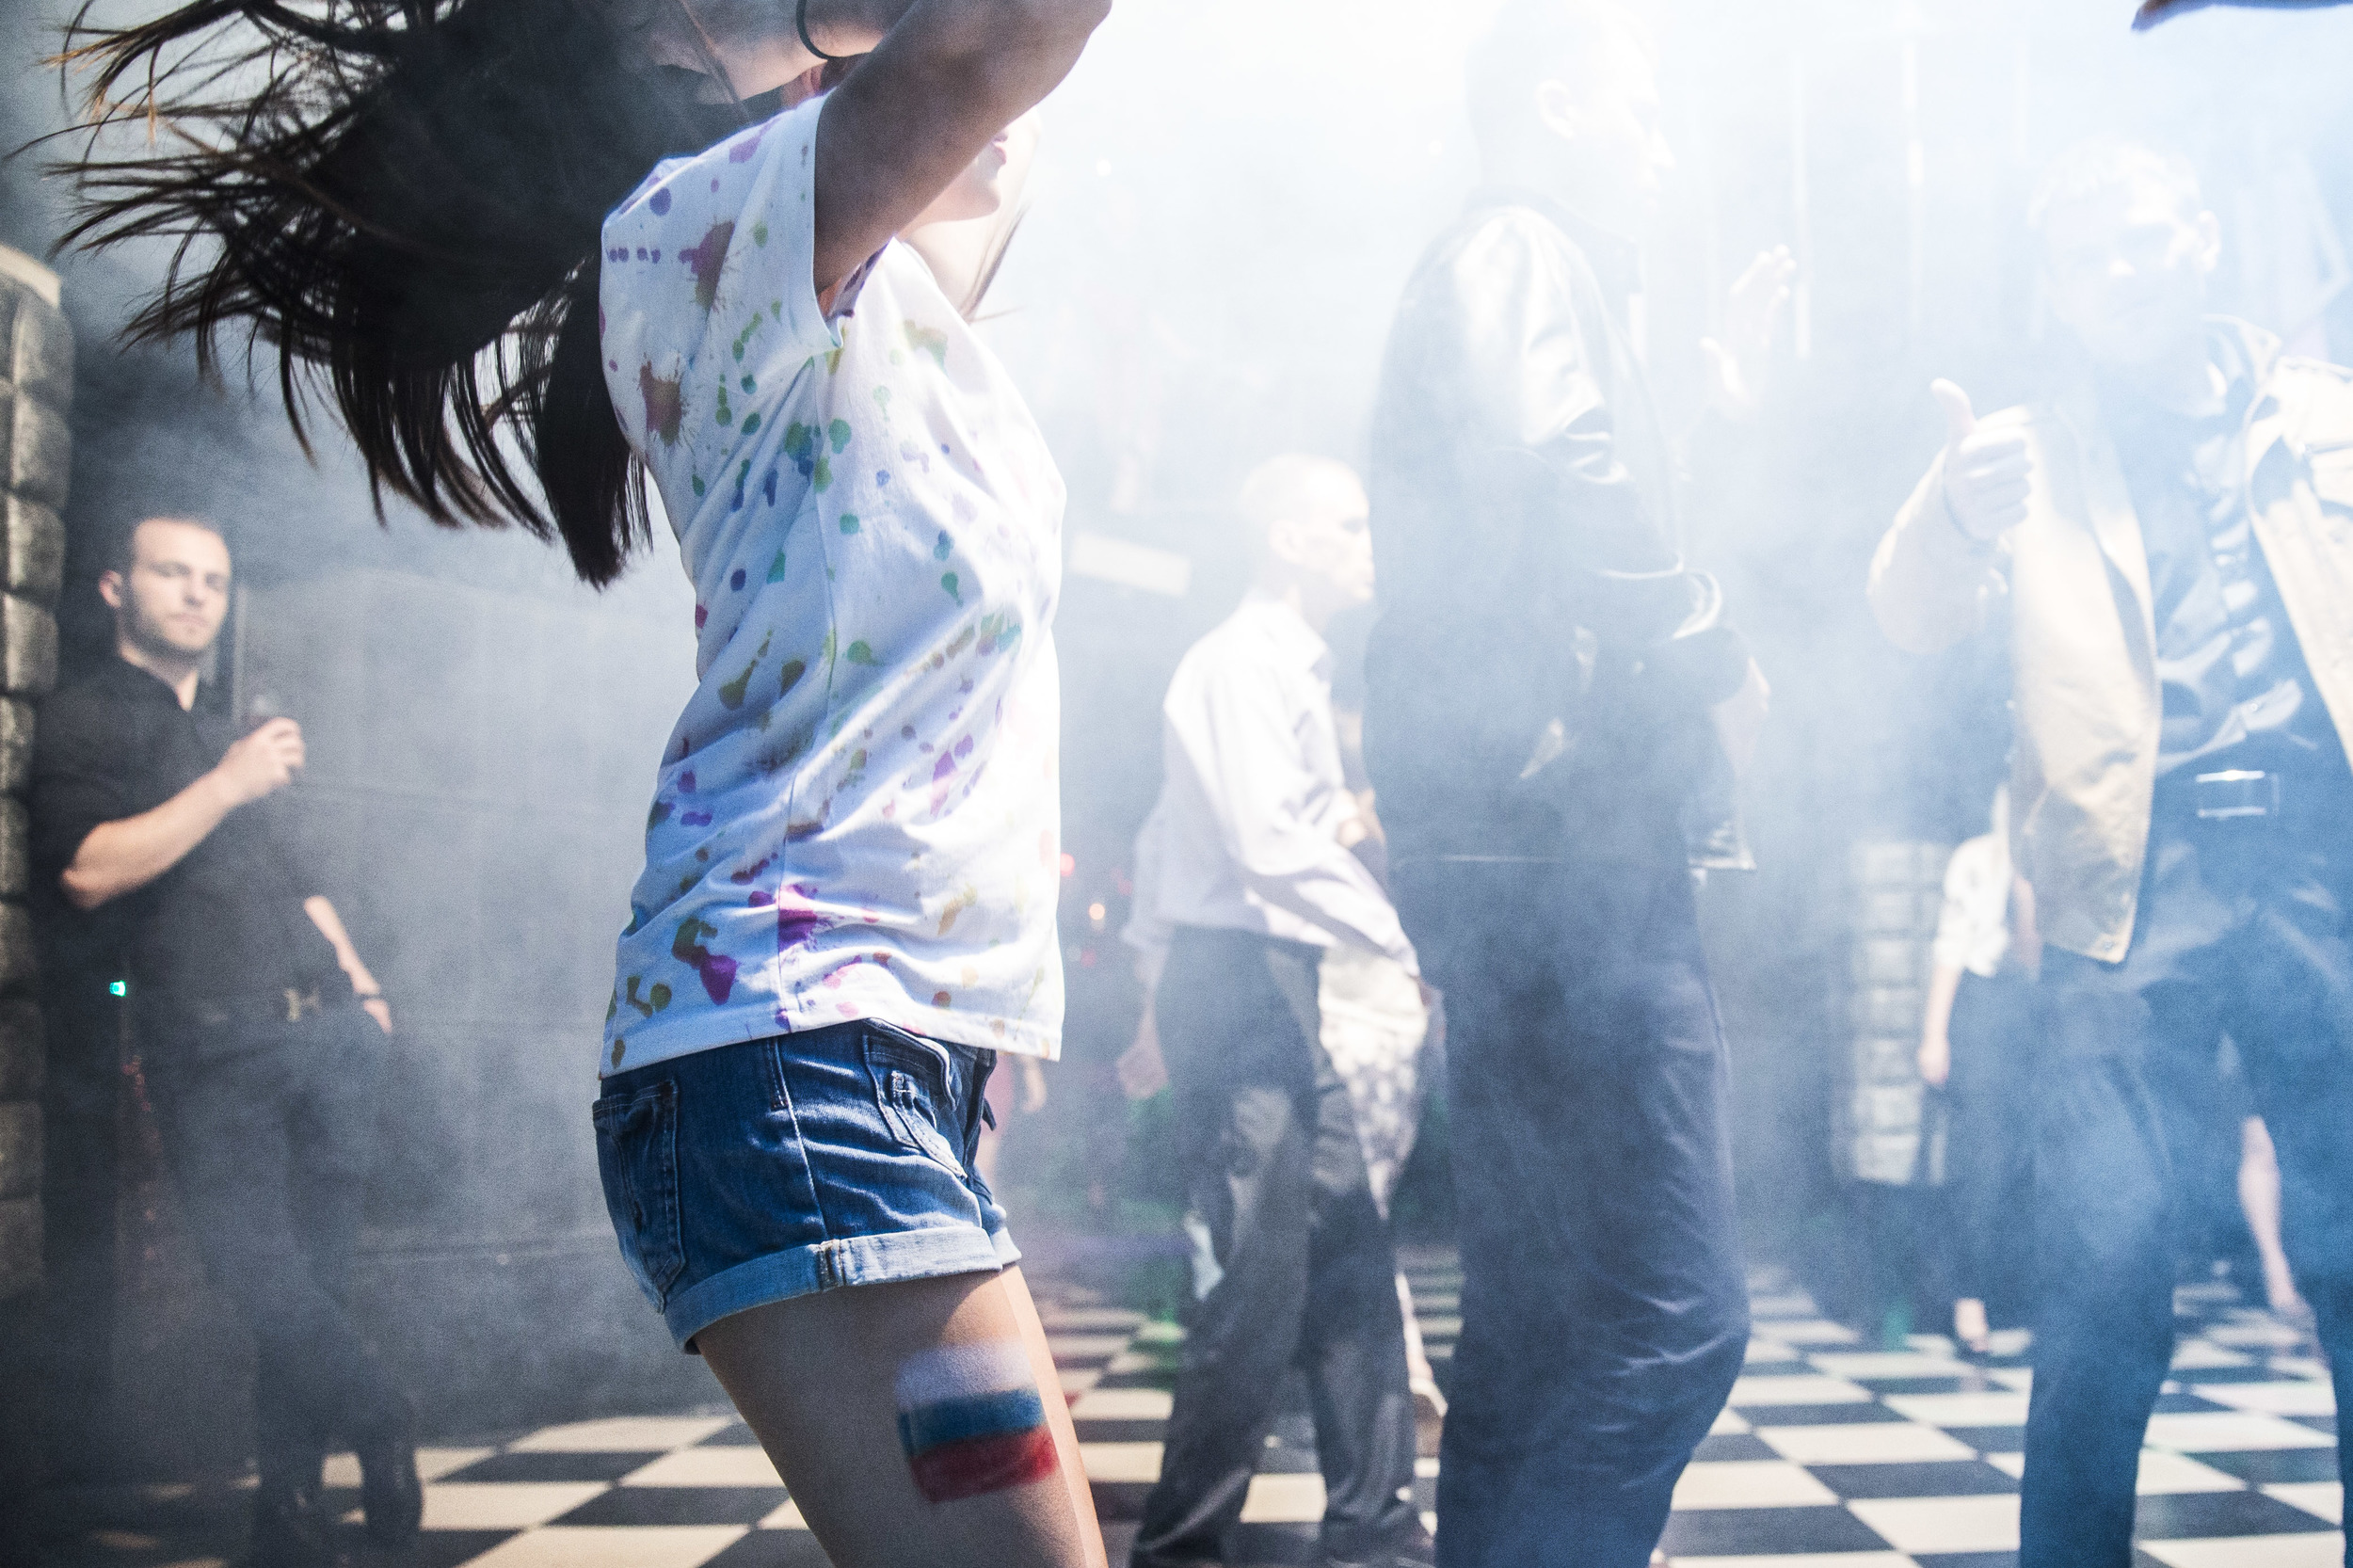 Woman with a national flag painted on her leg parties on Russia day in London club in Moscow